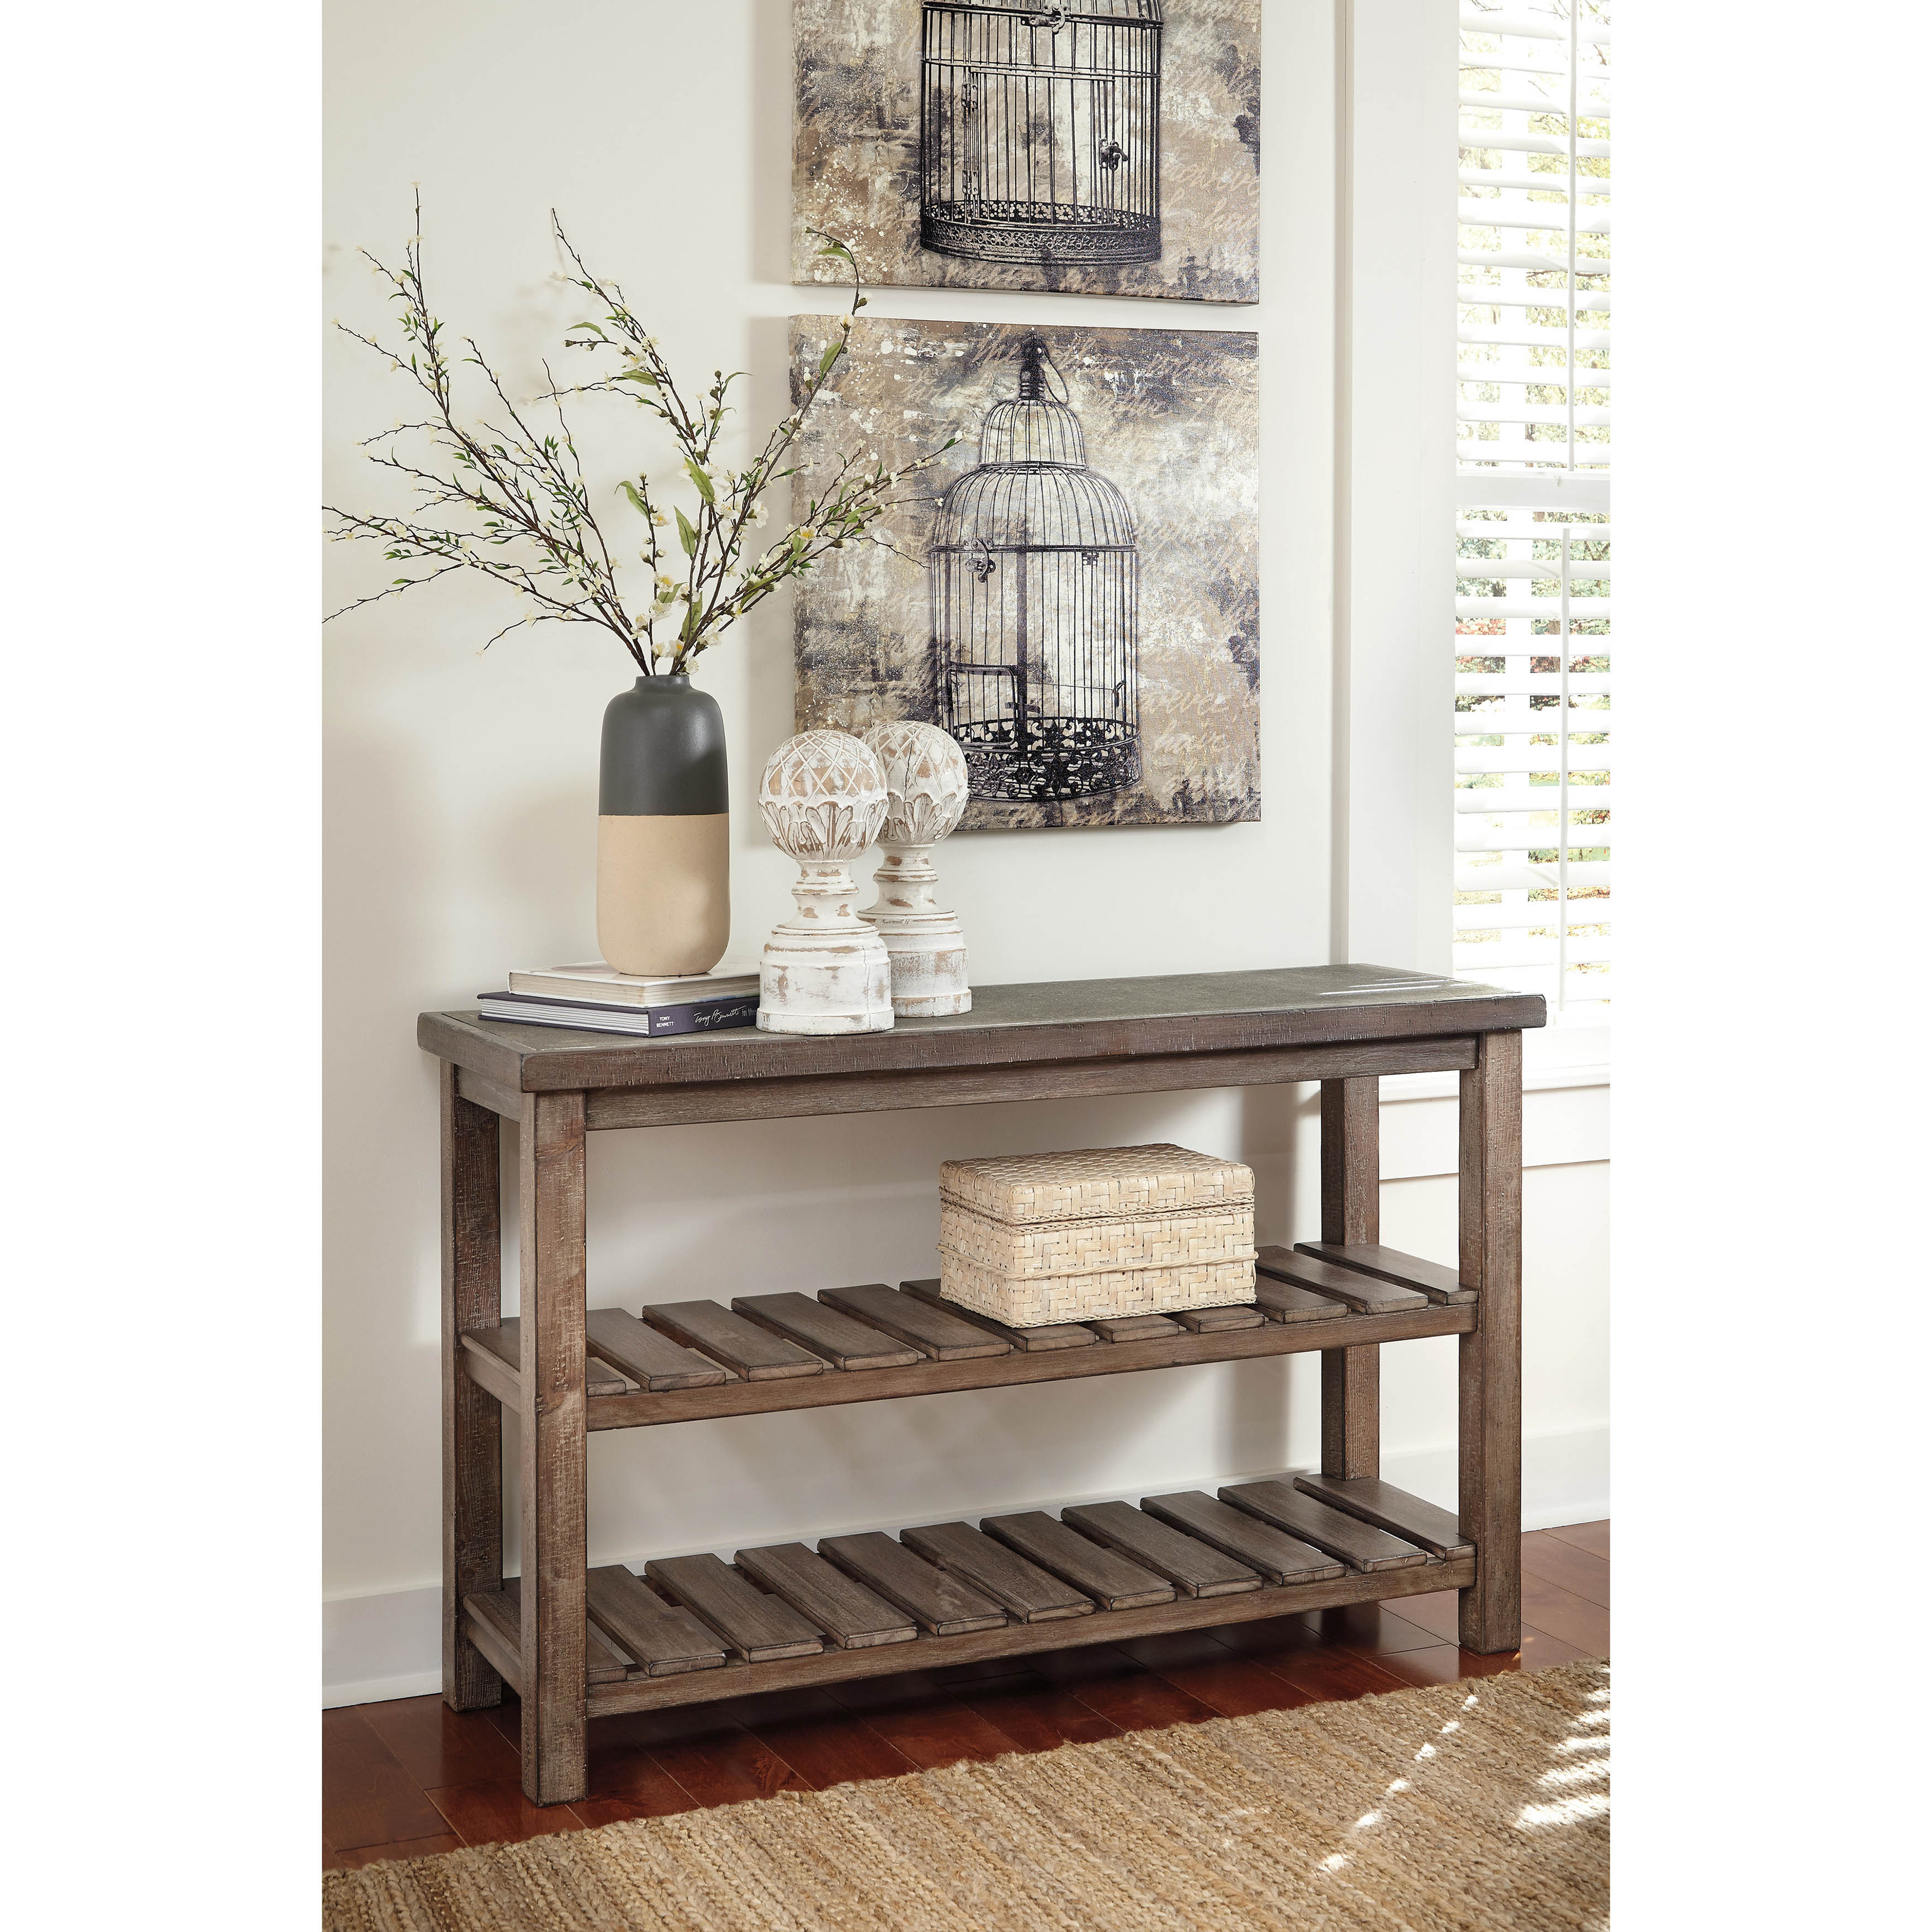 Signature Design By Ashley Vennilux Grayish Brown Sofa Table   Free  Shipping Today   Overstock   17811609